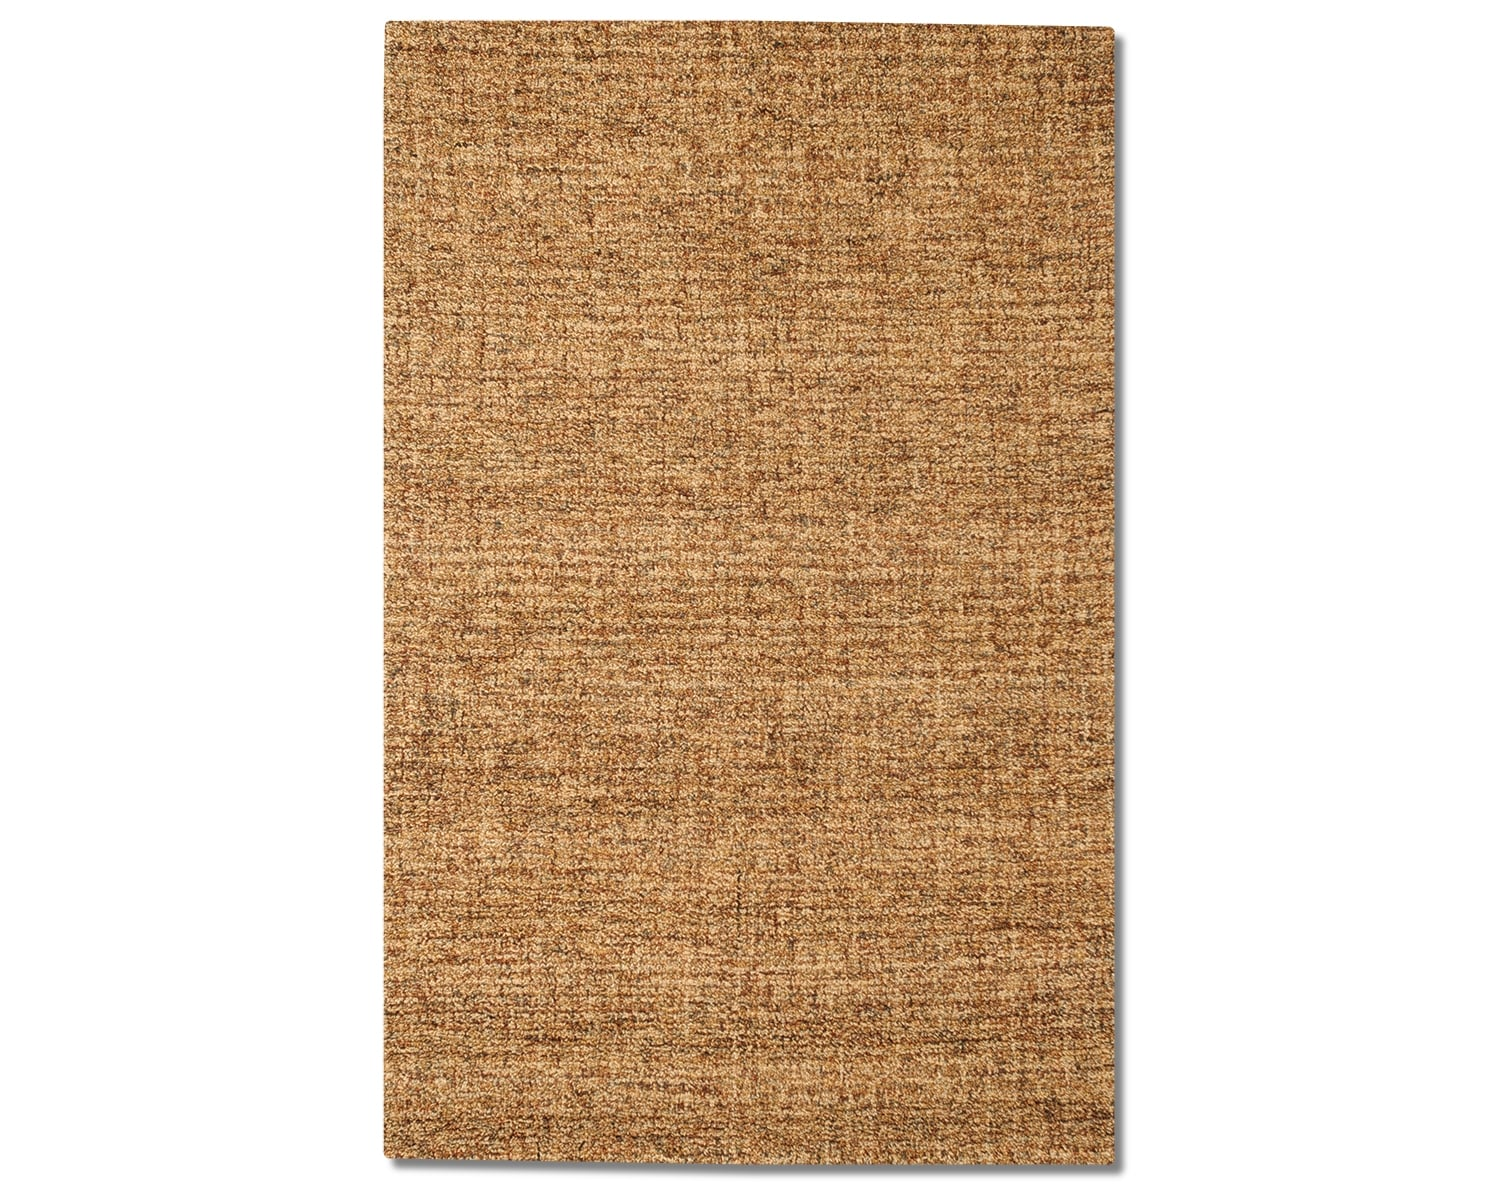 The Textures Hyde Collection - Beige and Sage